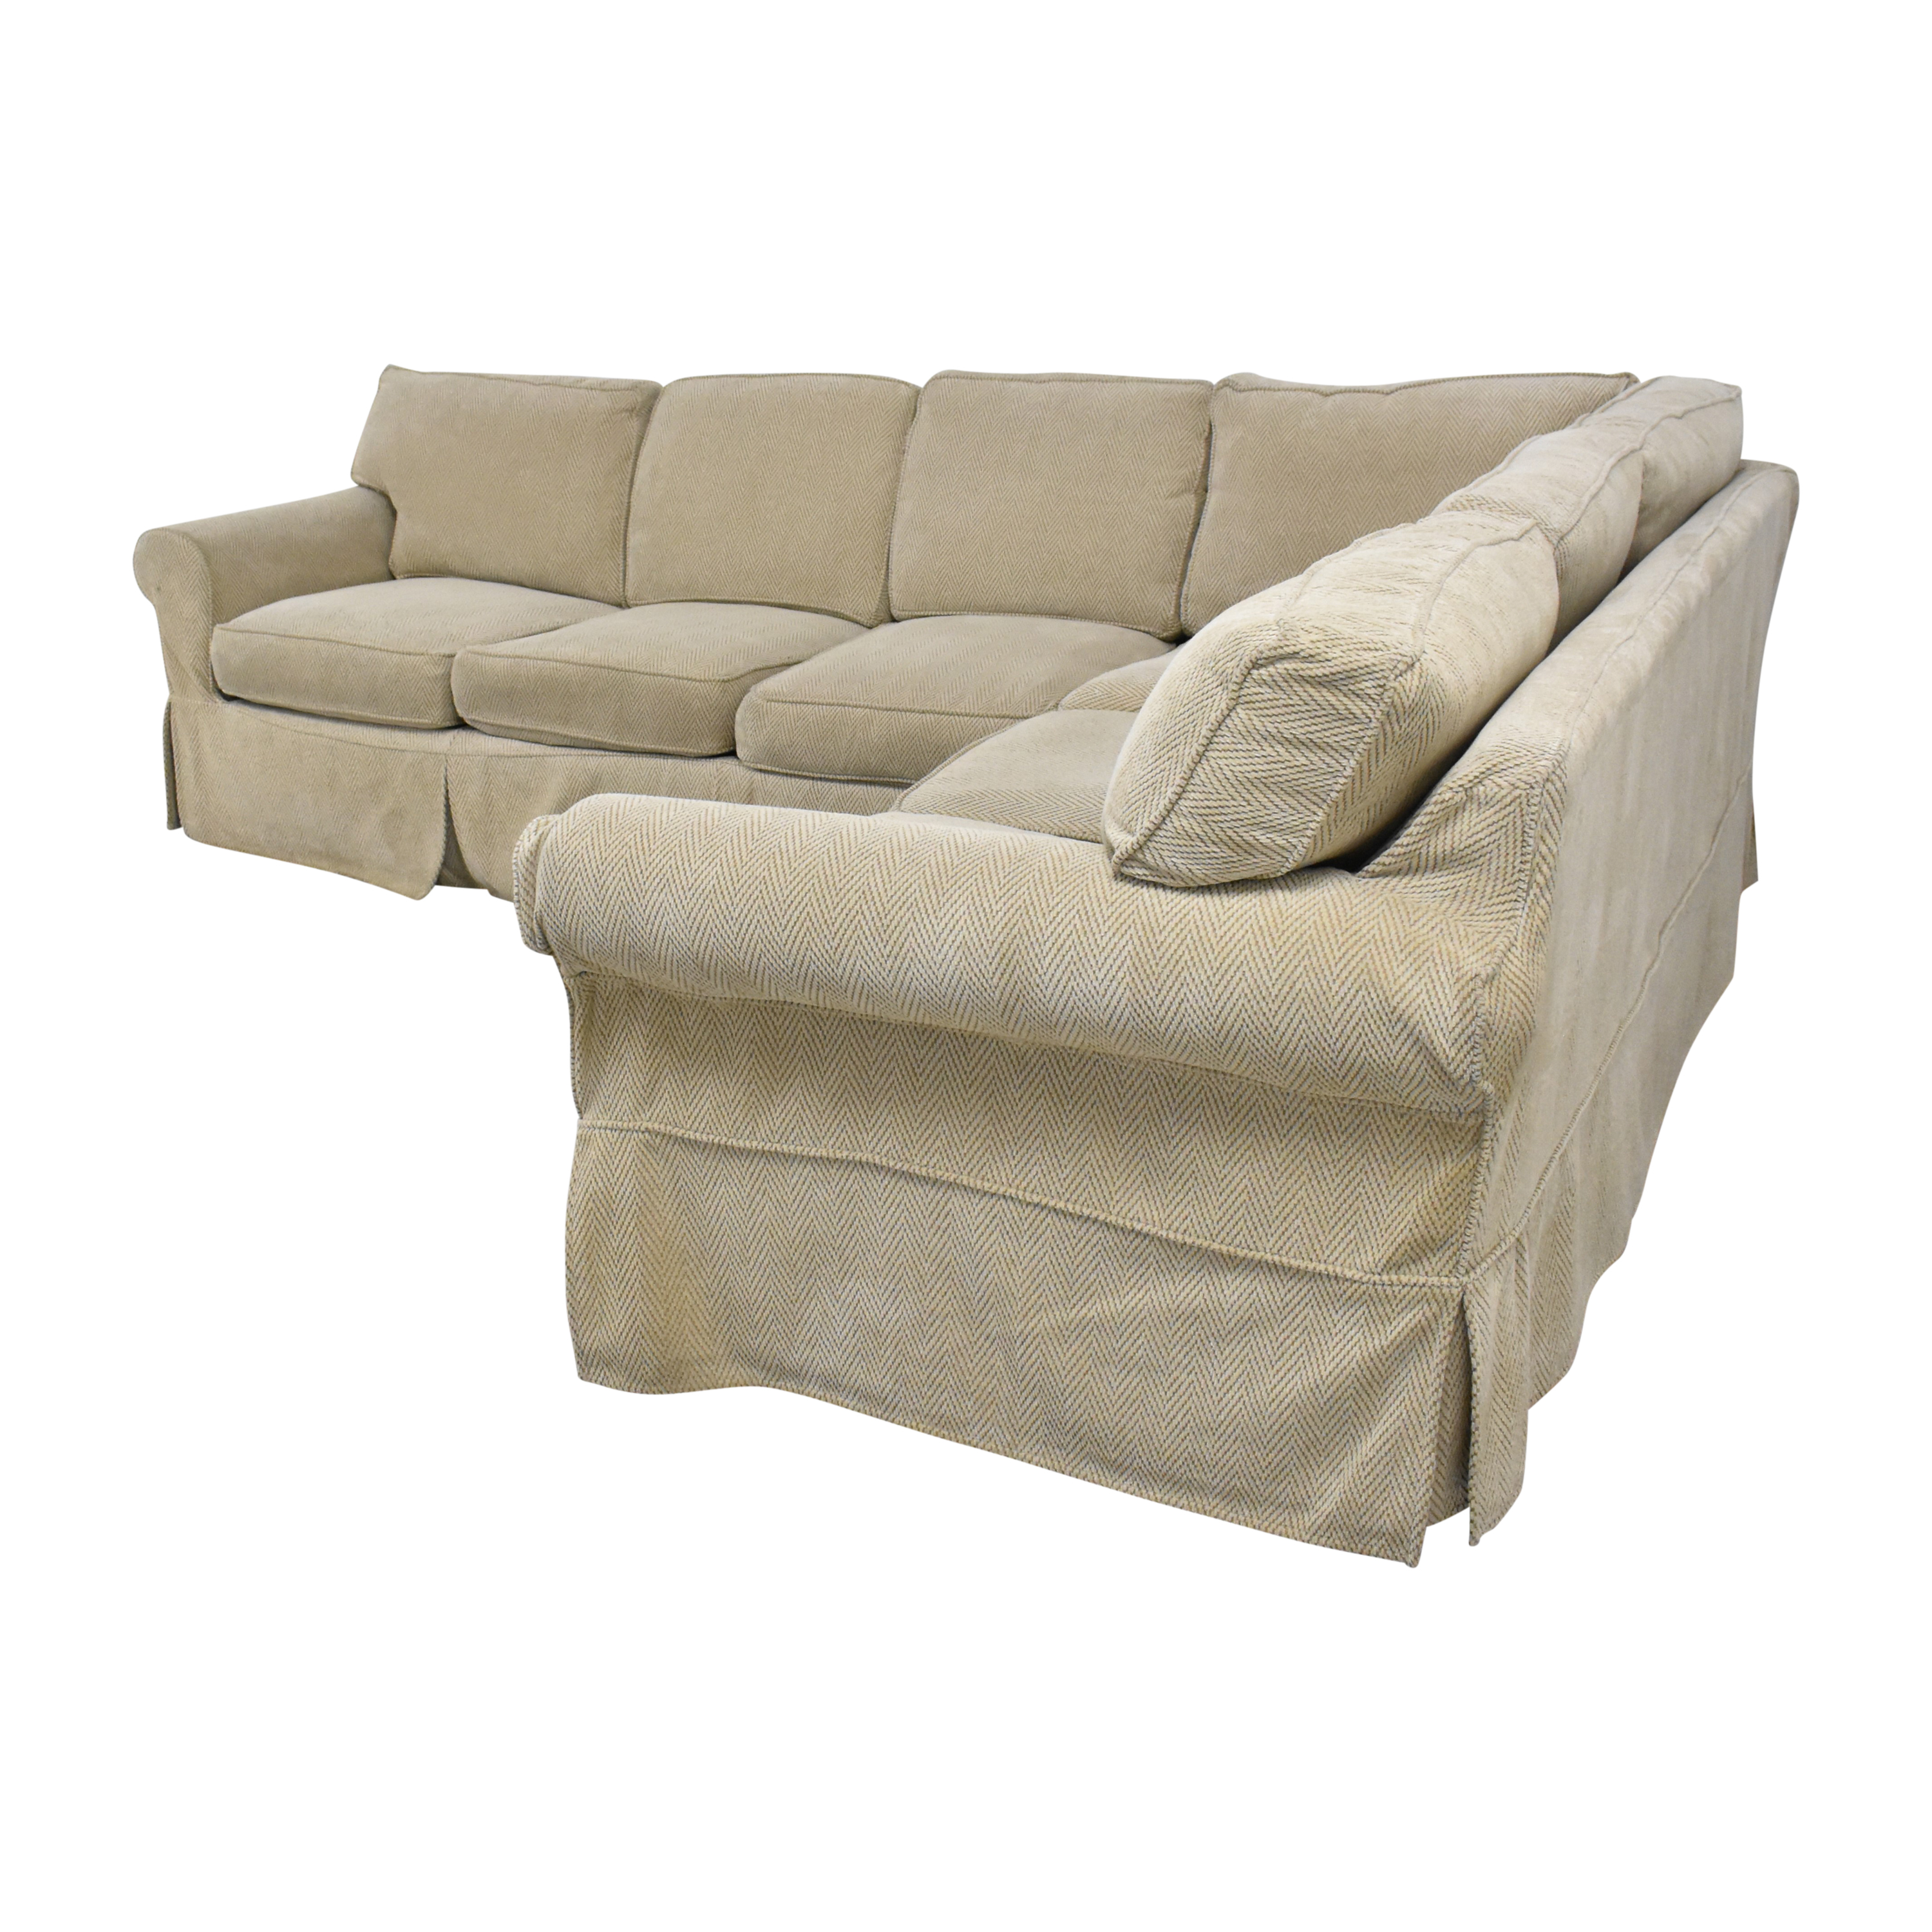 Country Willow Country Willow Vineyard Slipcovered Corner Sectional Sofa nj